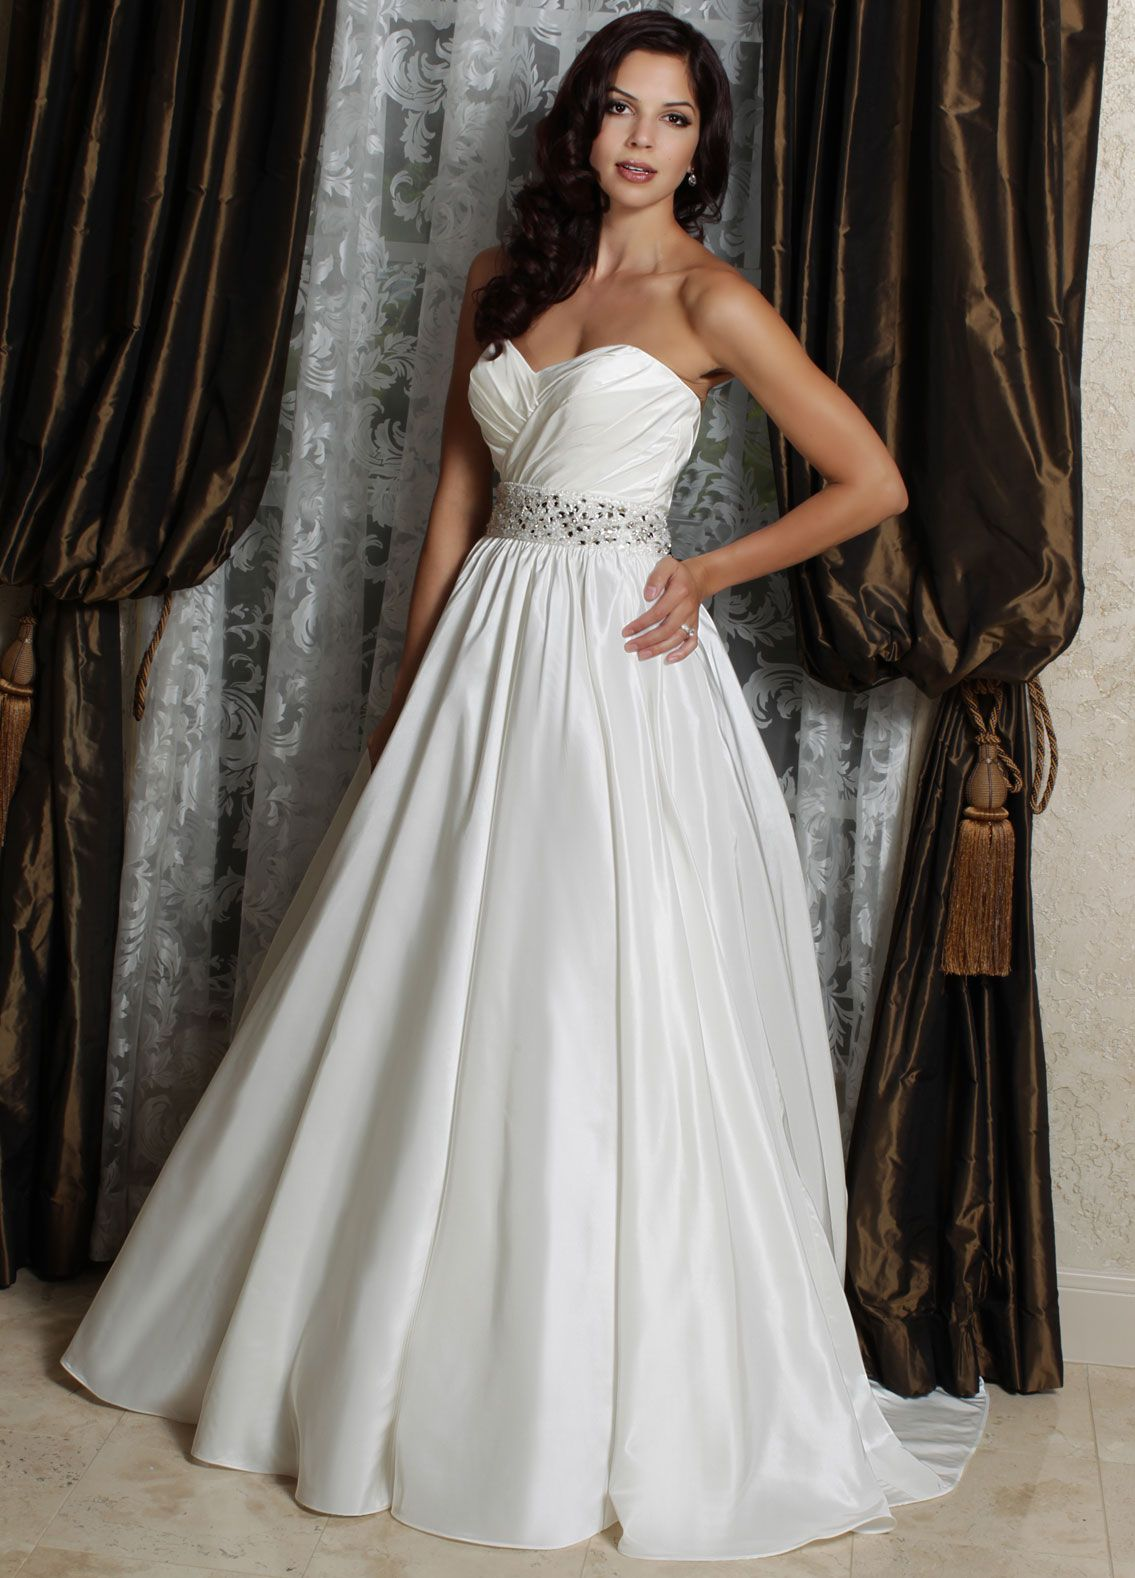 Davinci bridal is your ultimate destination for bridesmaid dresses davinci bridal is your ultimate destination for bridesmaid dresses designer wedding gowns and best bridal ombrellifo Image collections